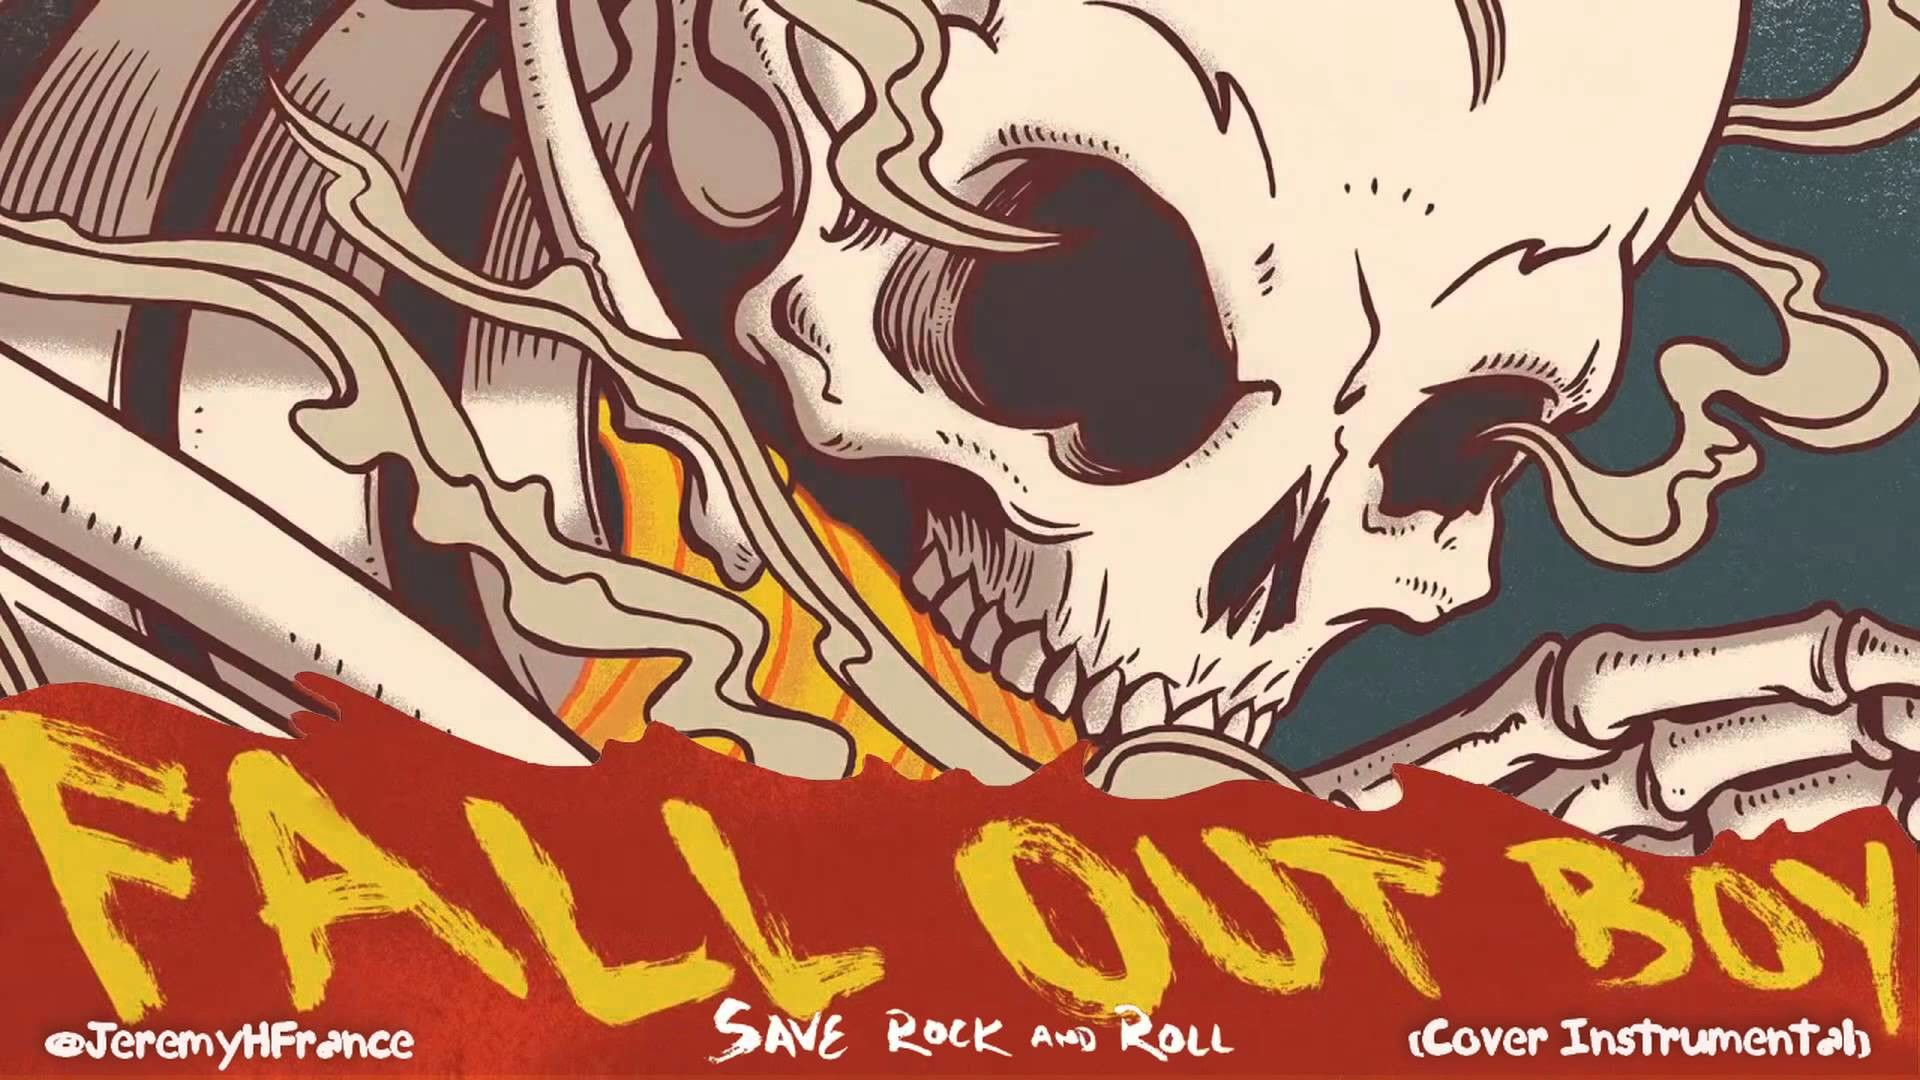 Fall Out Boy – Save Rock and Roll (Instrumental Cover)